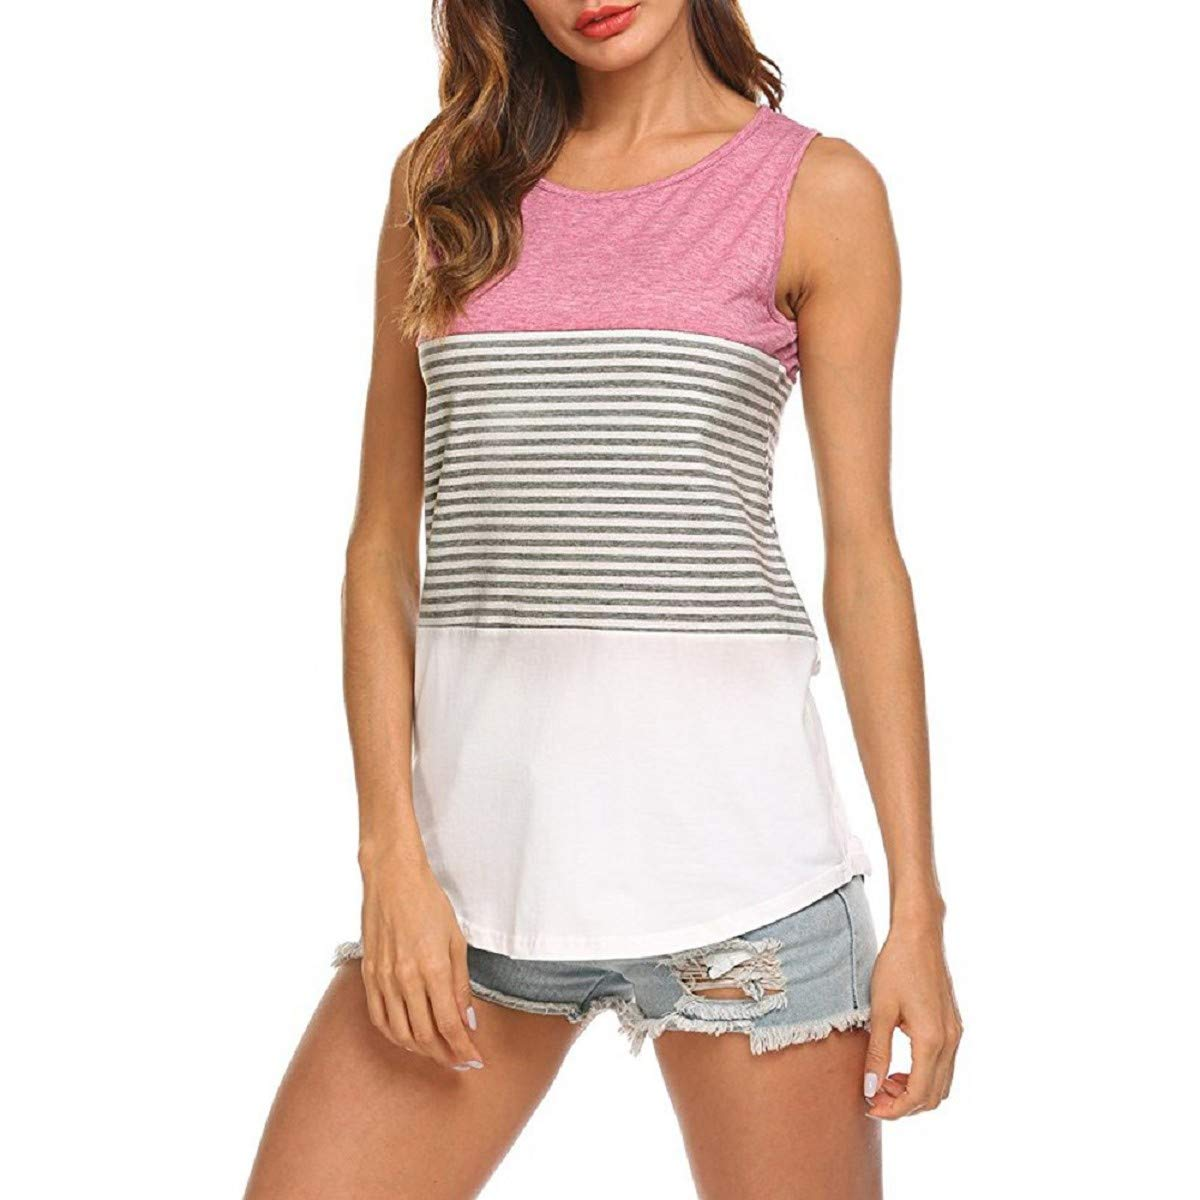 OTINICE Woman's Loose Tank Tops Summer Sleeveless Color Block Striped Casual T-Shirt Blouse Pink